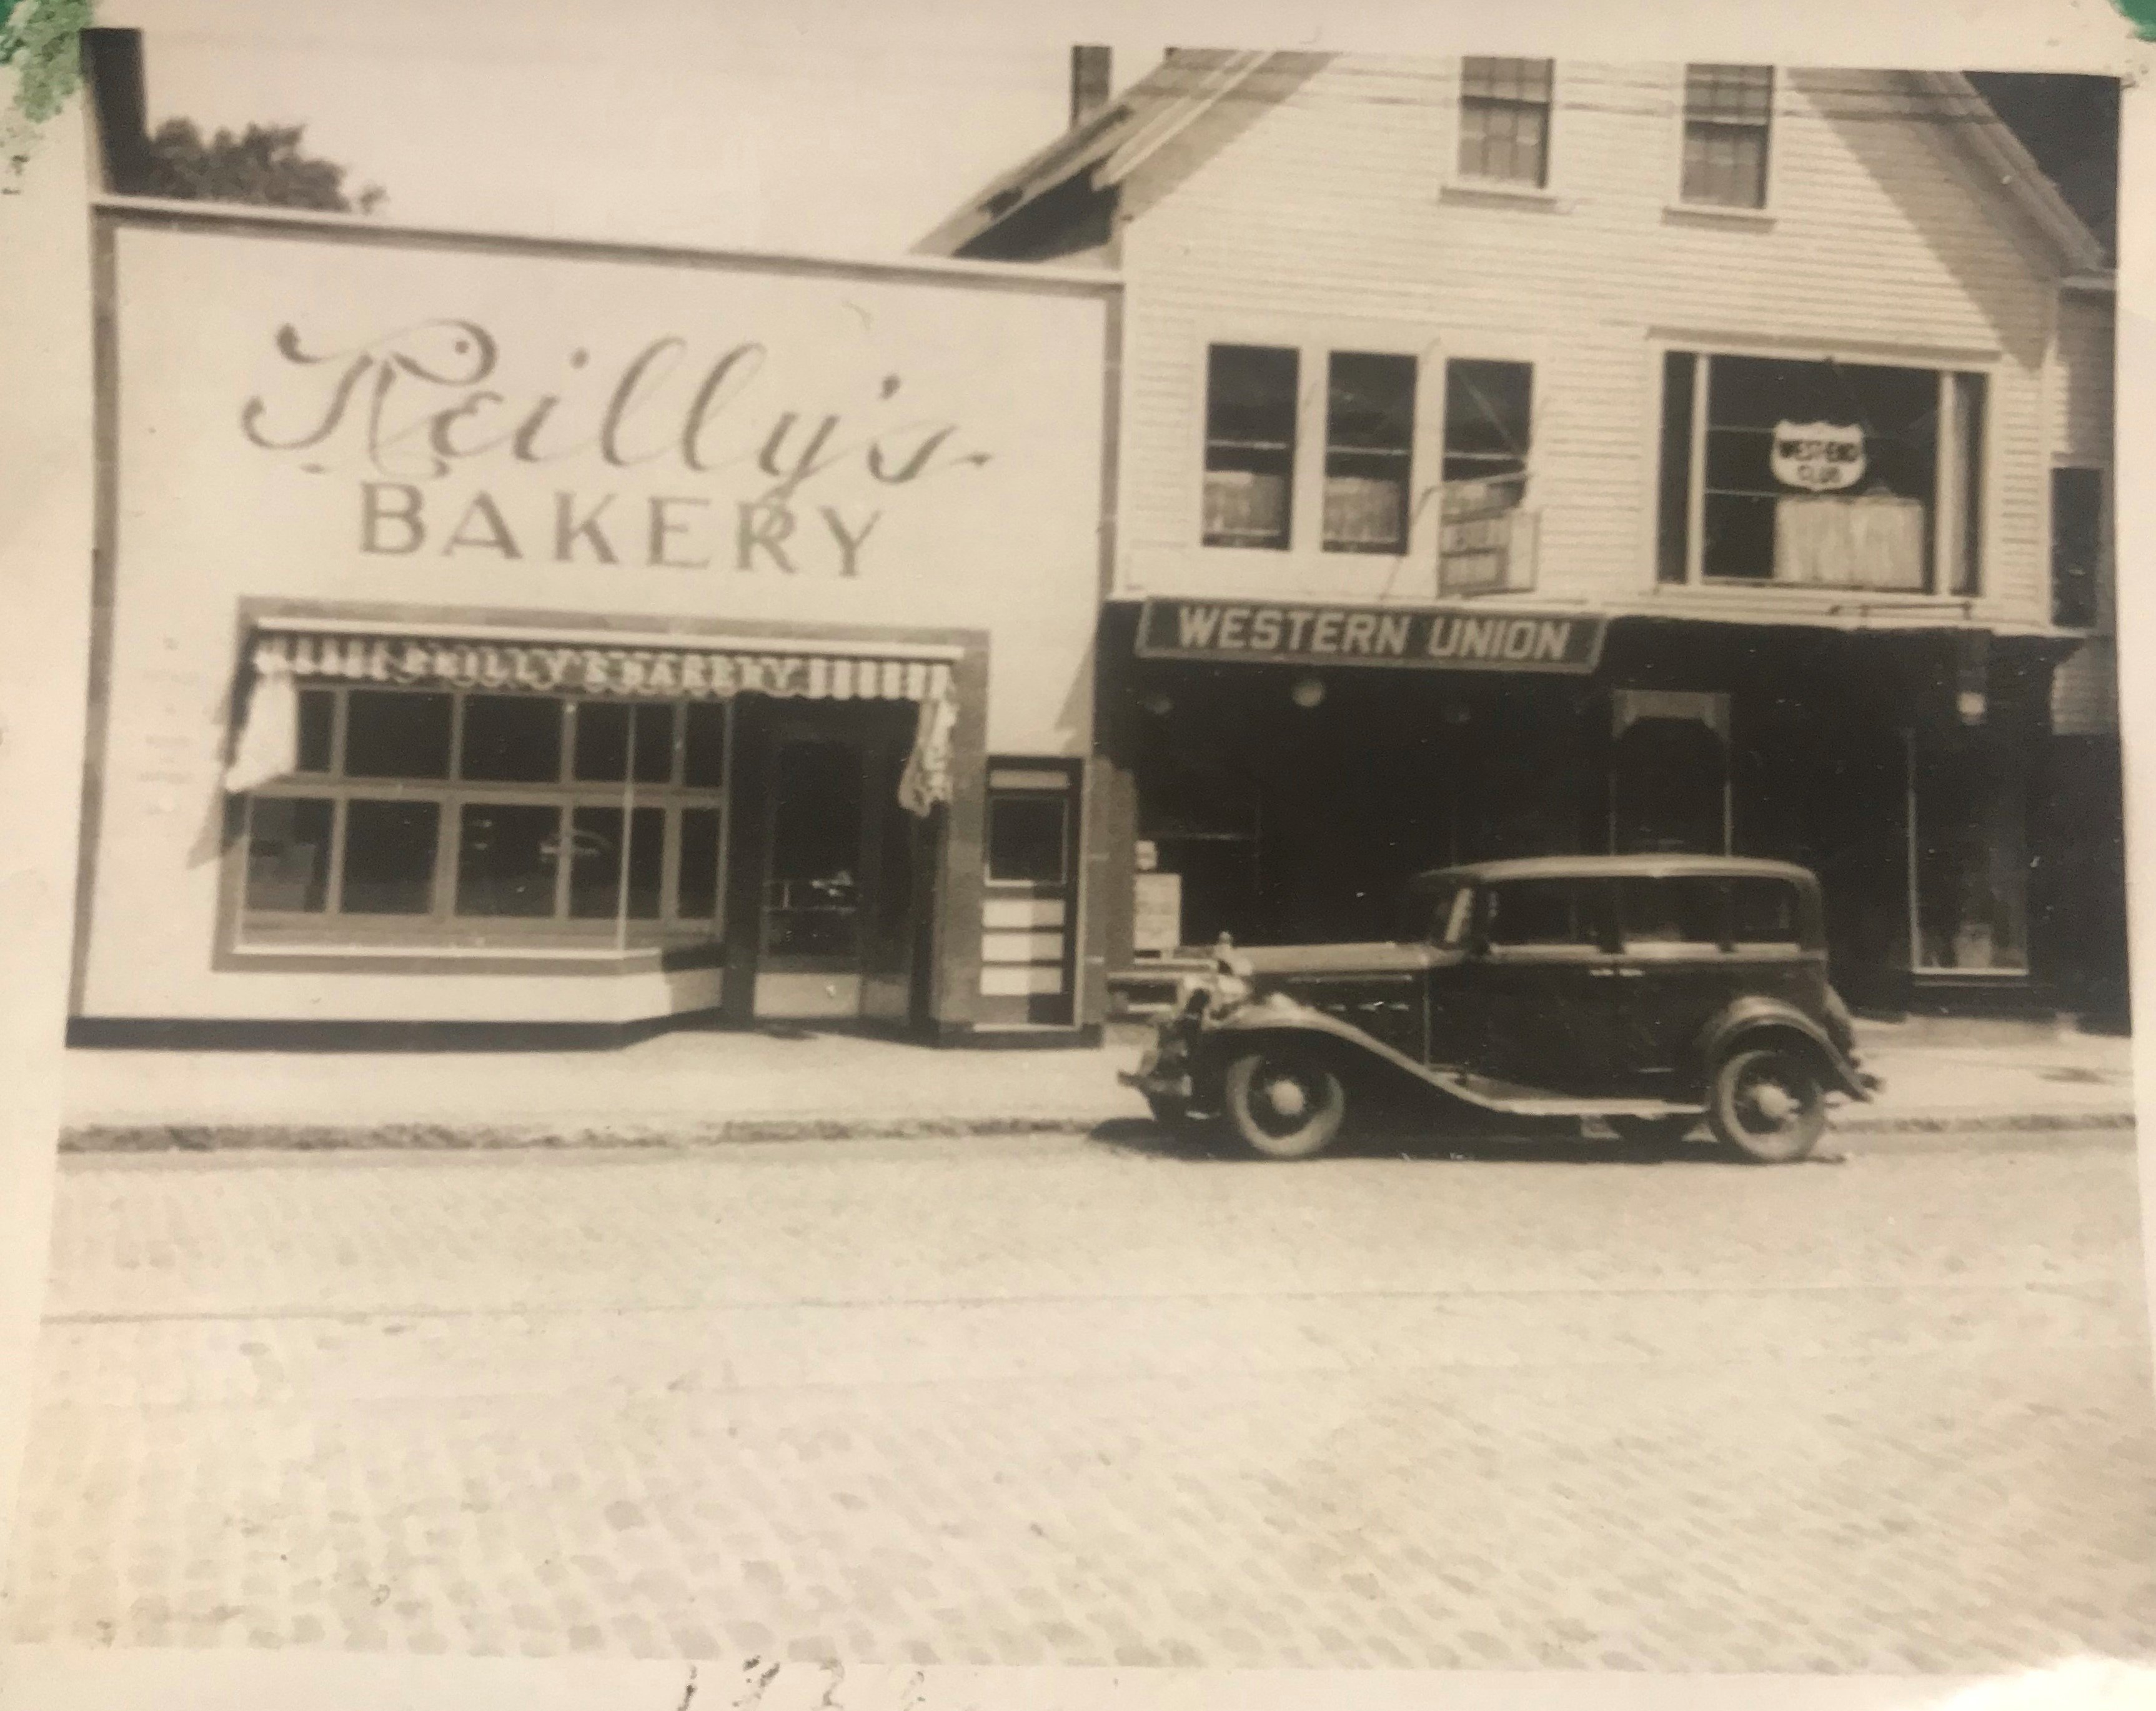 Old Photo of Reilly's Bakery